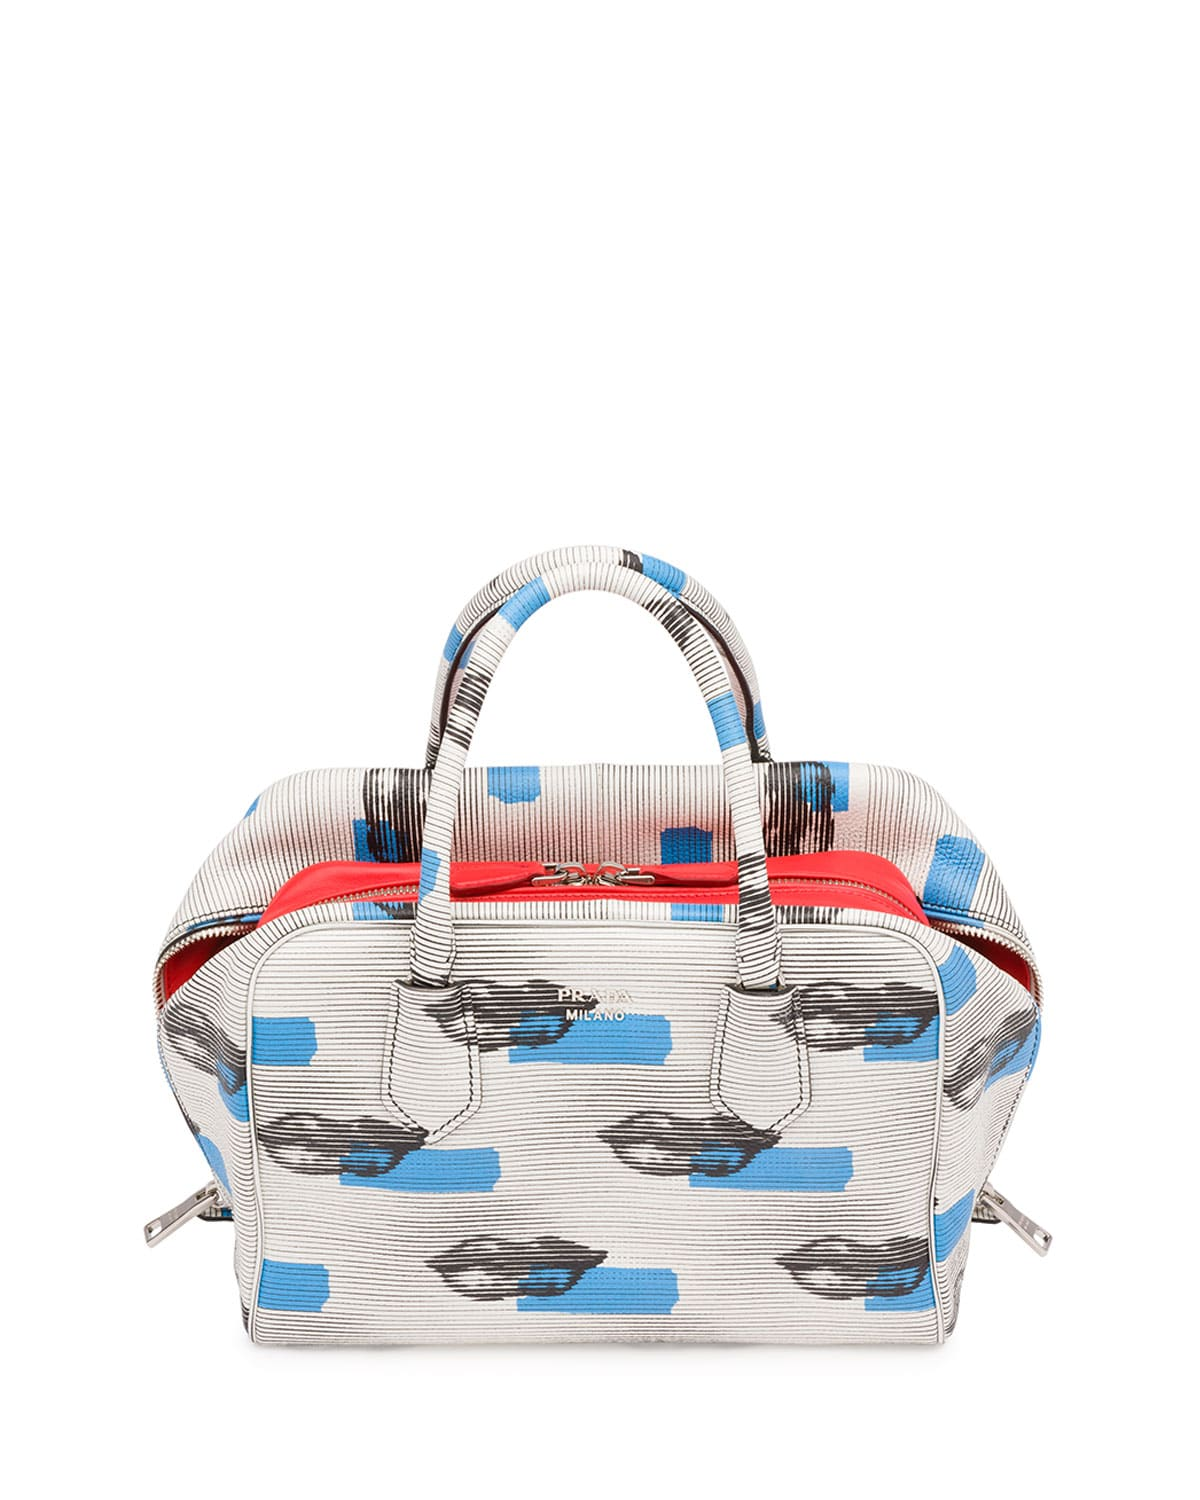 prada pouch sale - Prada Resort 2016 Bag Collection Featuring Perforated Handbags ...